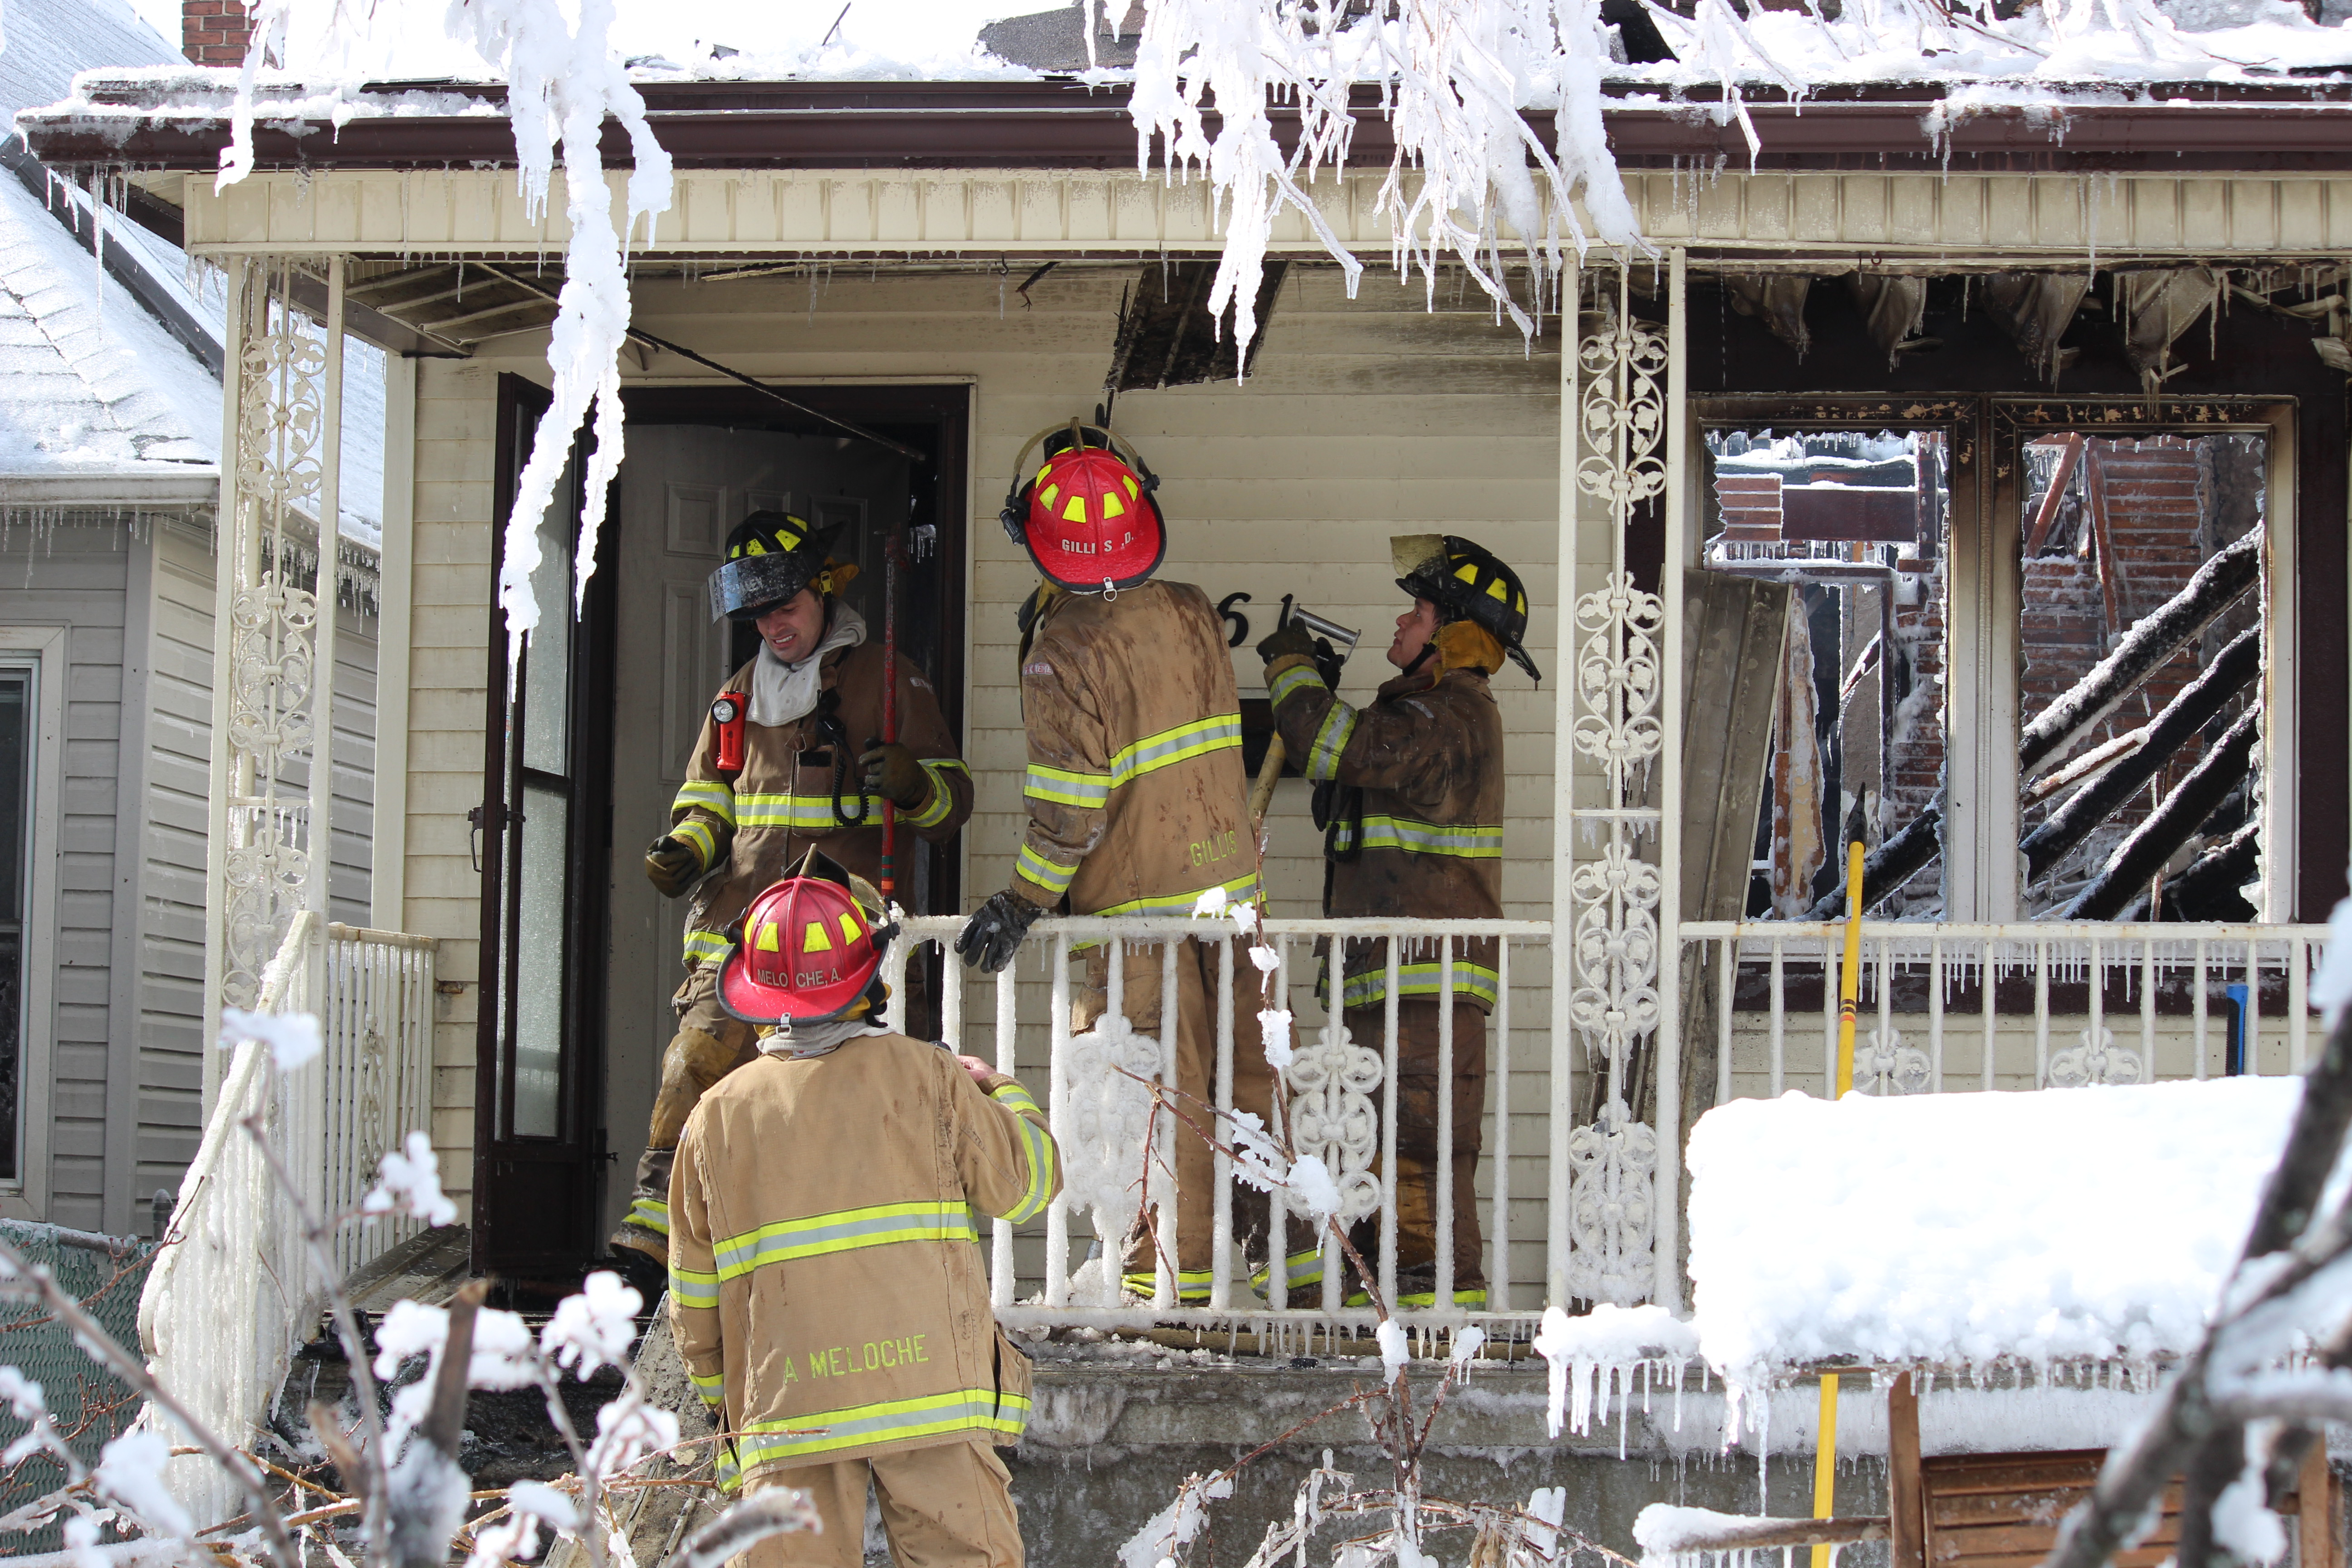 Windsor firefighters respond to a blaze at 761 Windsor Ave. on February 18, 2015. (Photo by Jason Viau)